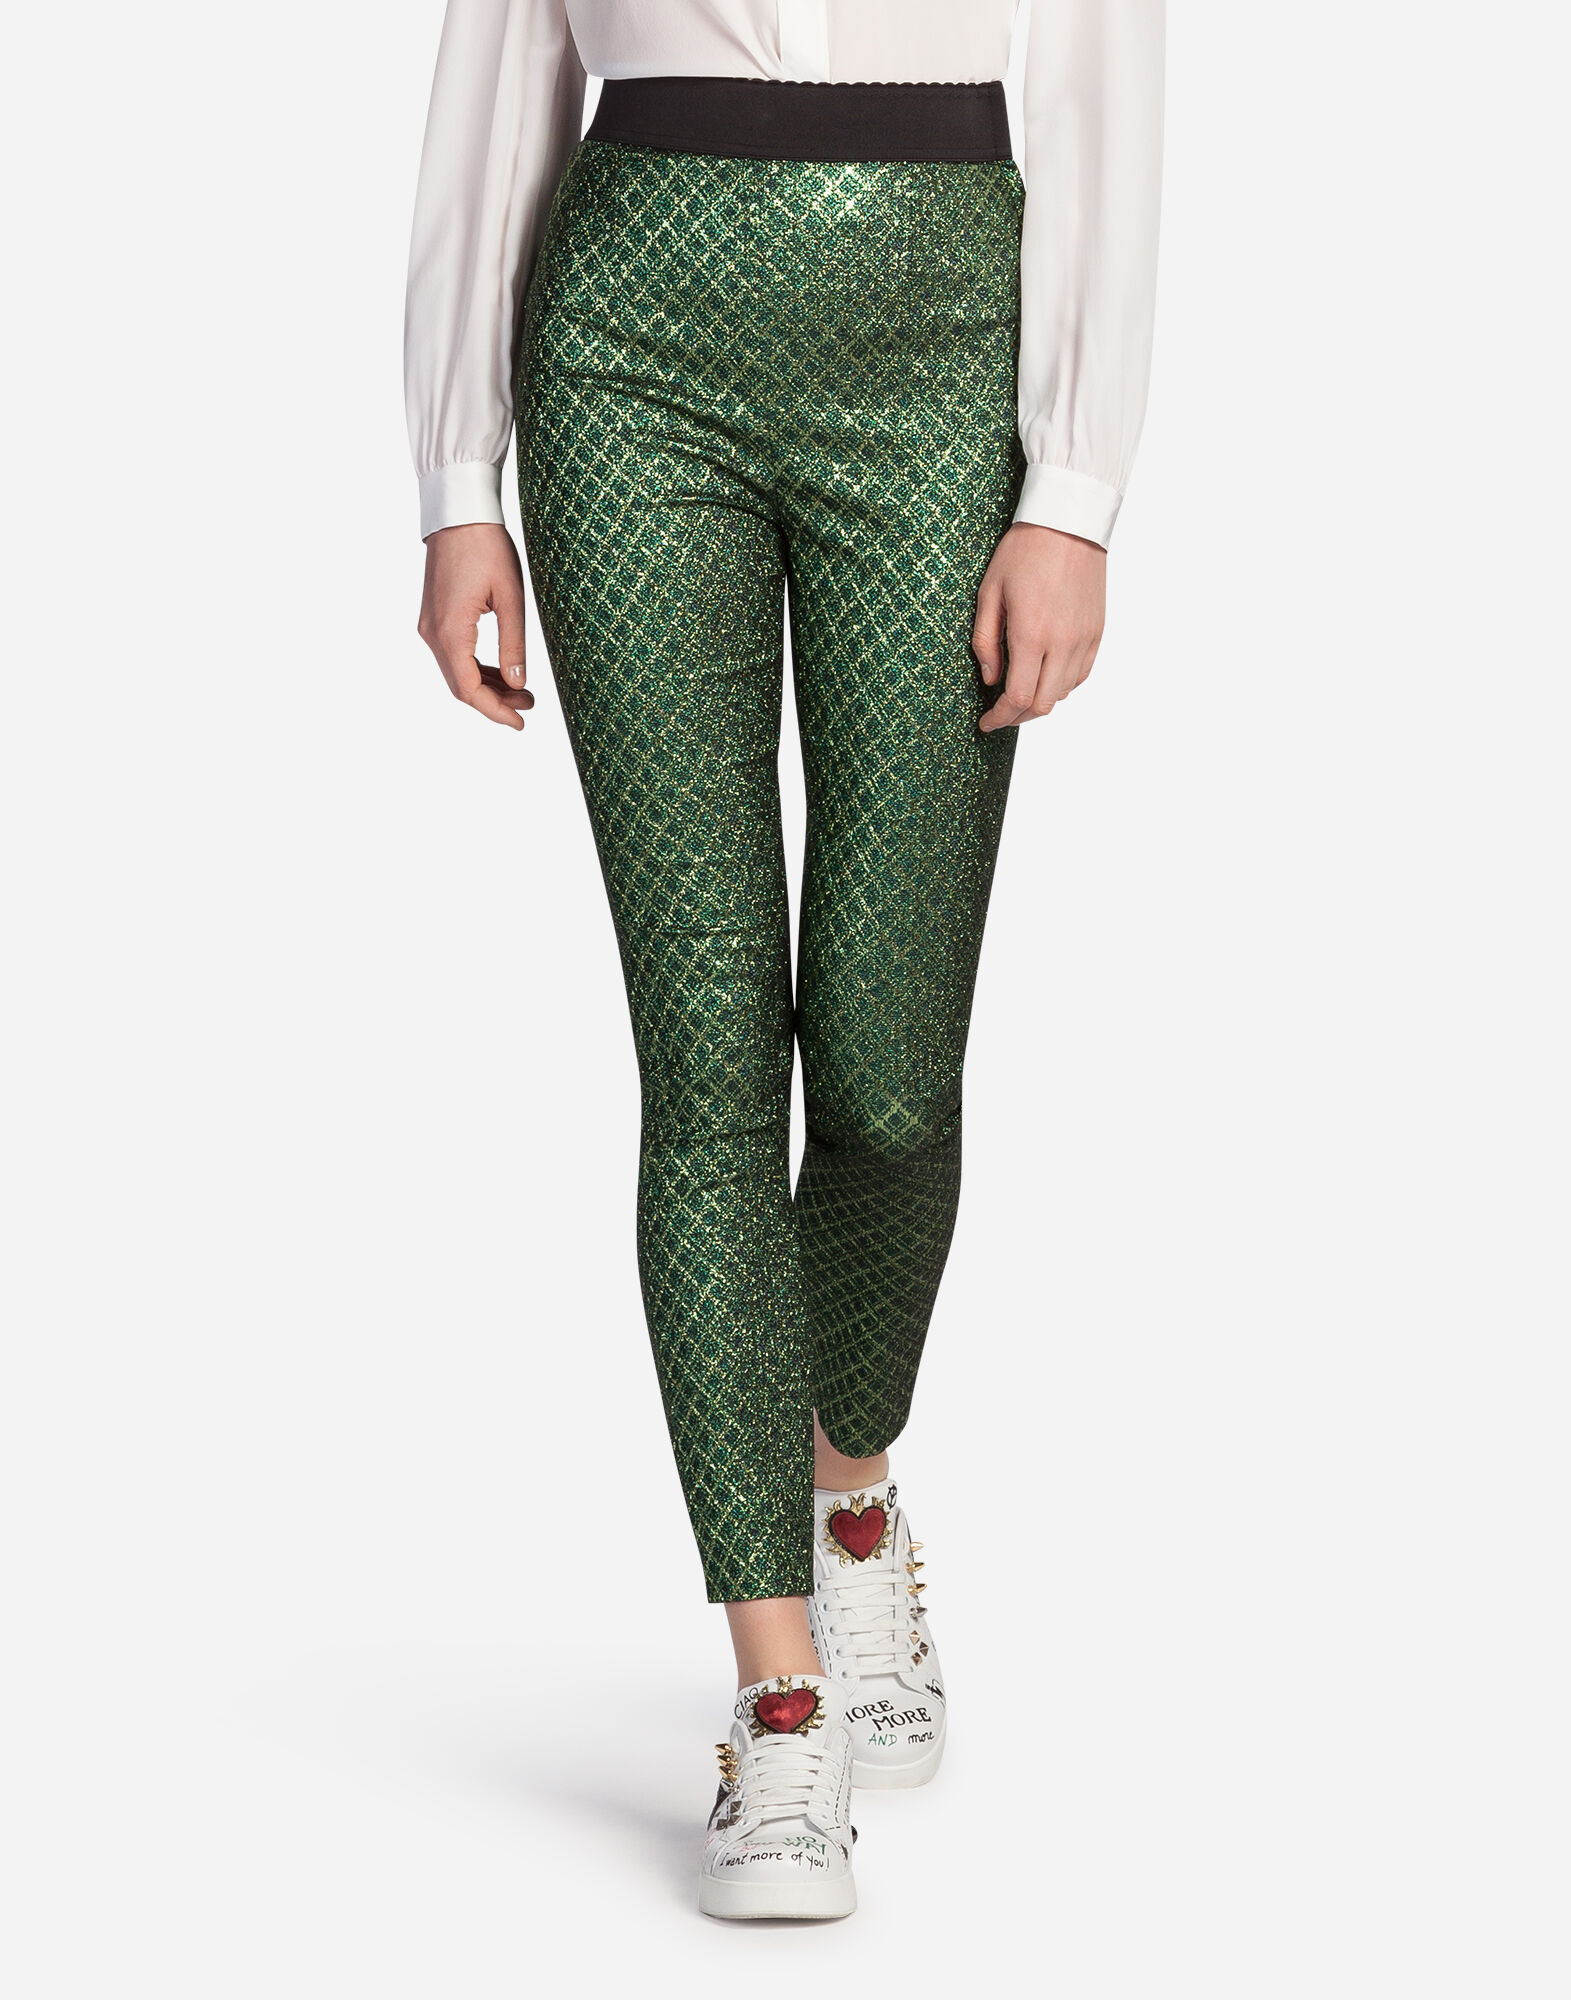 With a desirable textural serpentine pattern, these soft jacquard pants provide a neutral start to a highly chic look. Designer-styled with side zip, back elastic waistband, back patch pockets and petite side slits.